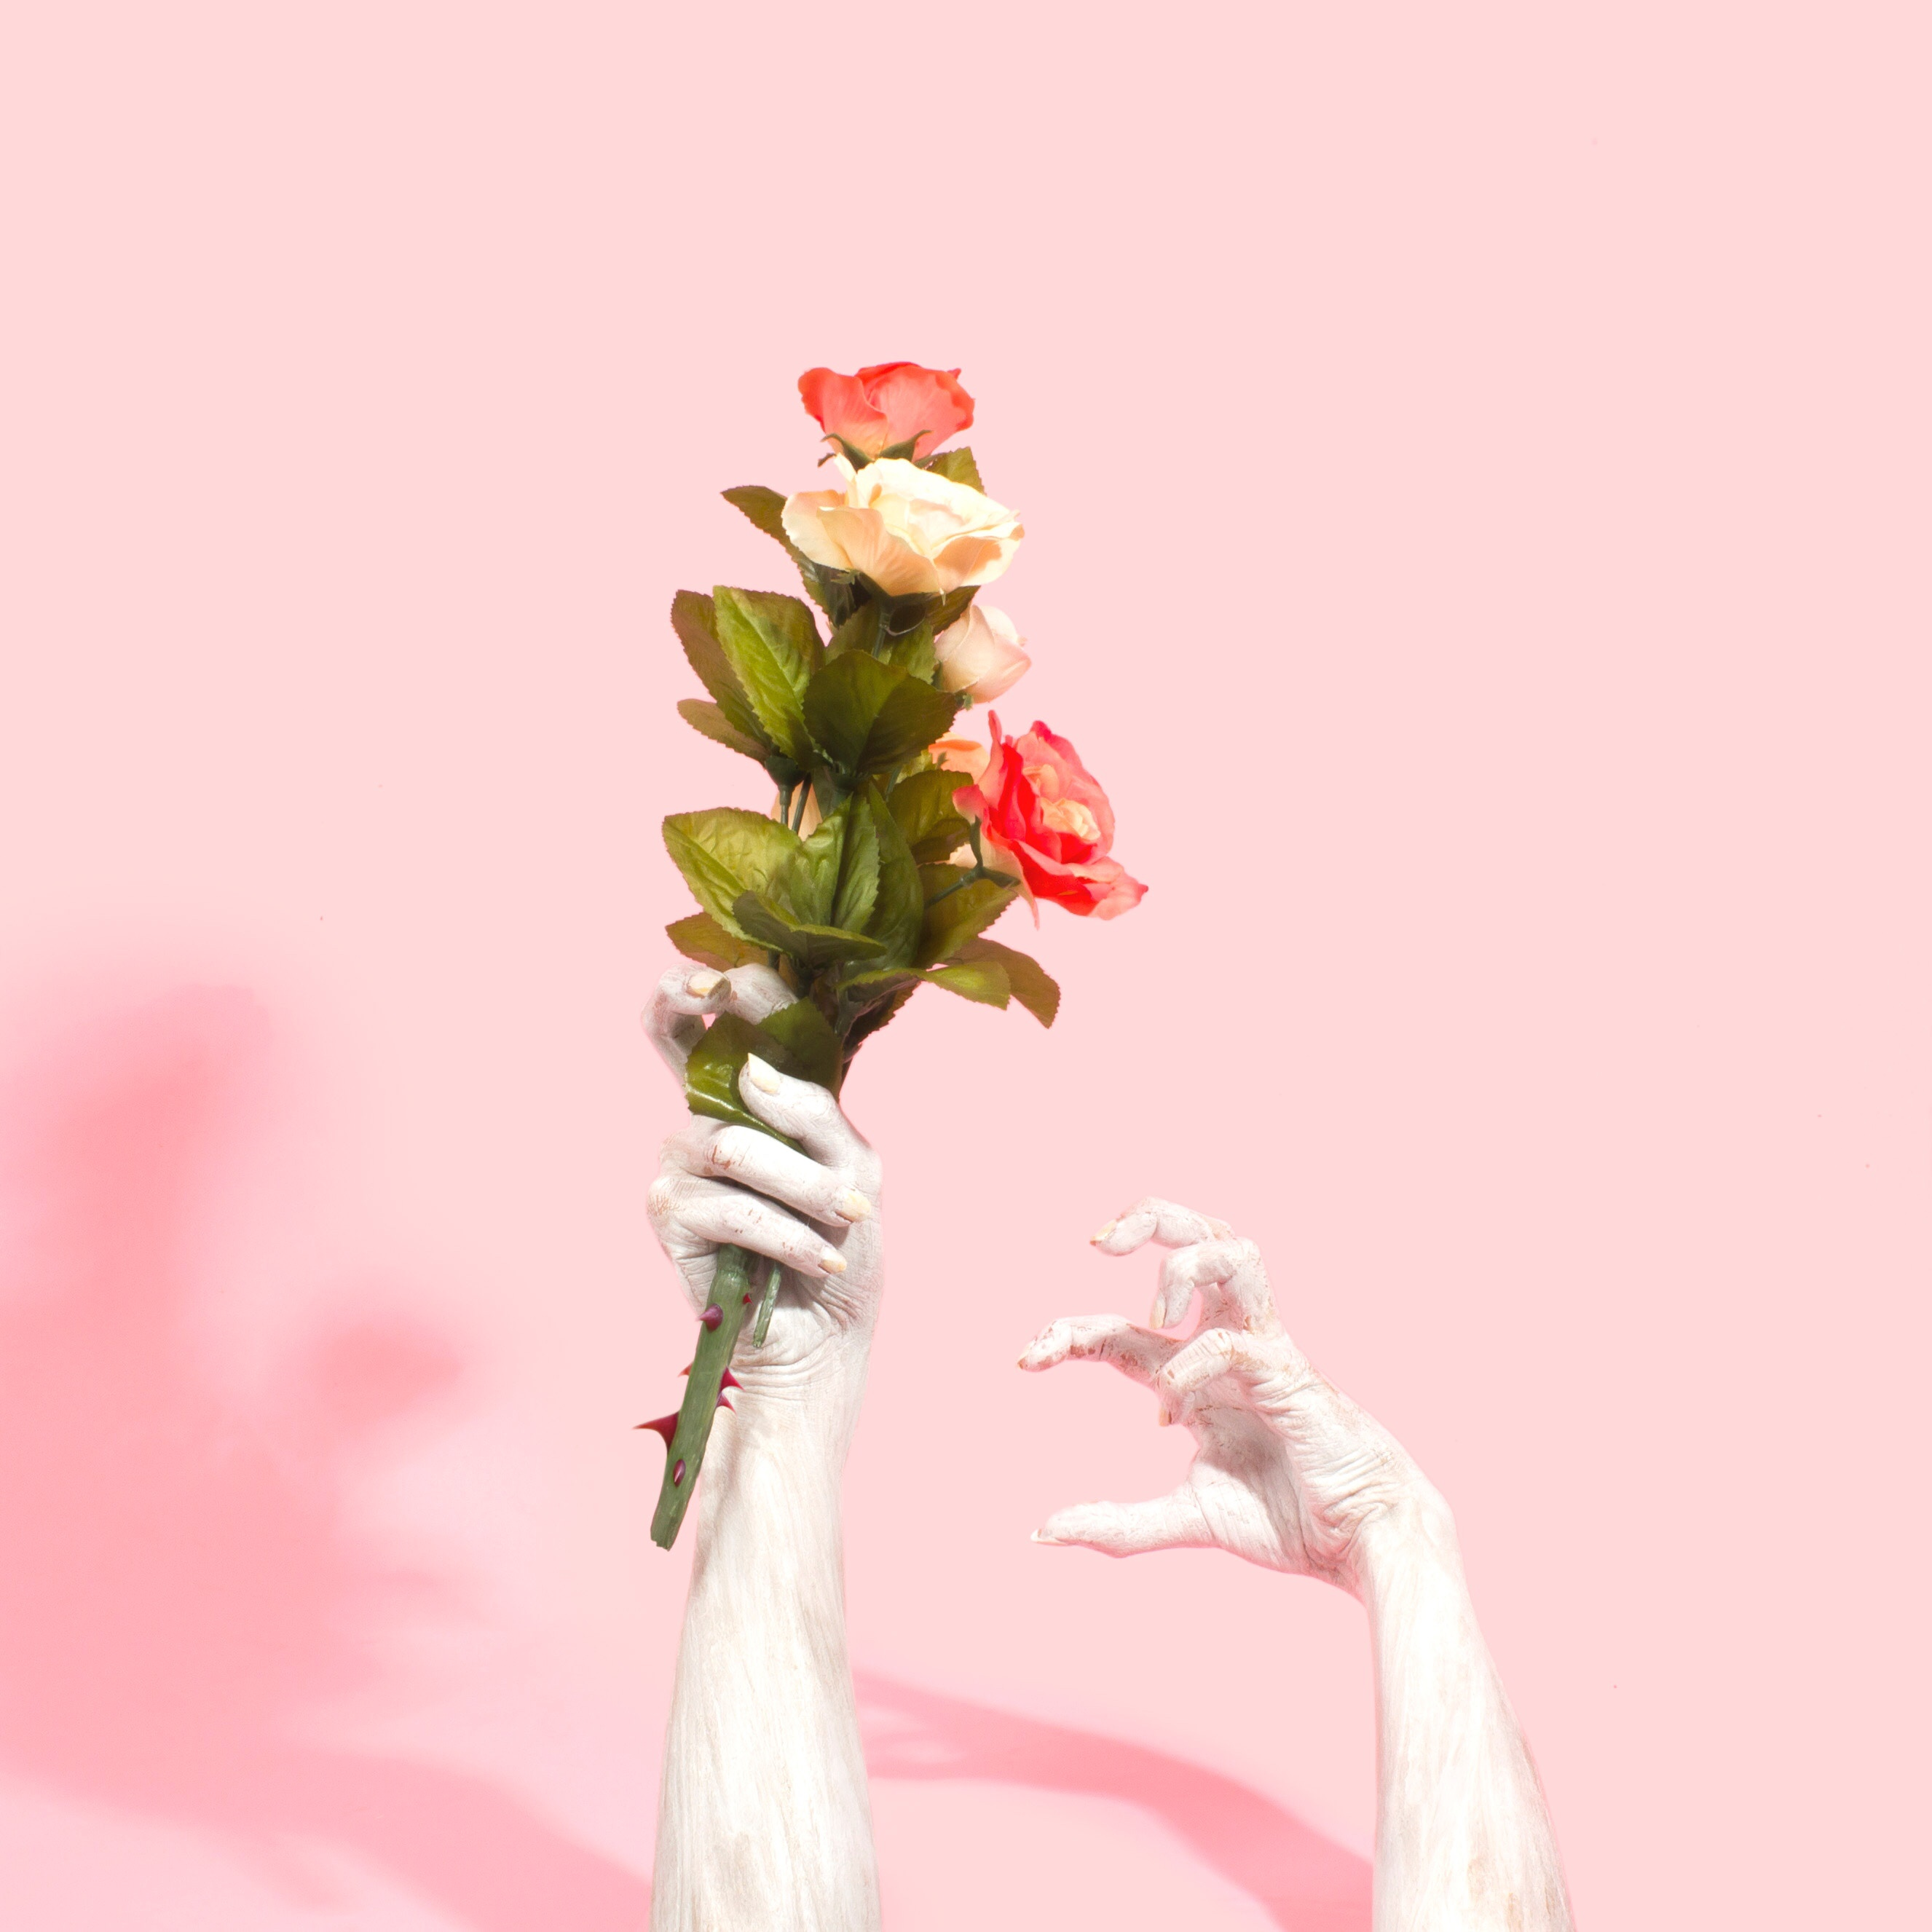 Zombie hand and hand with flowers